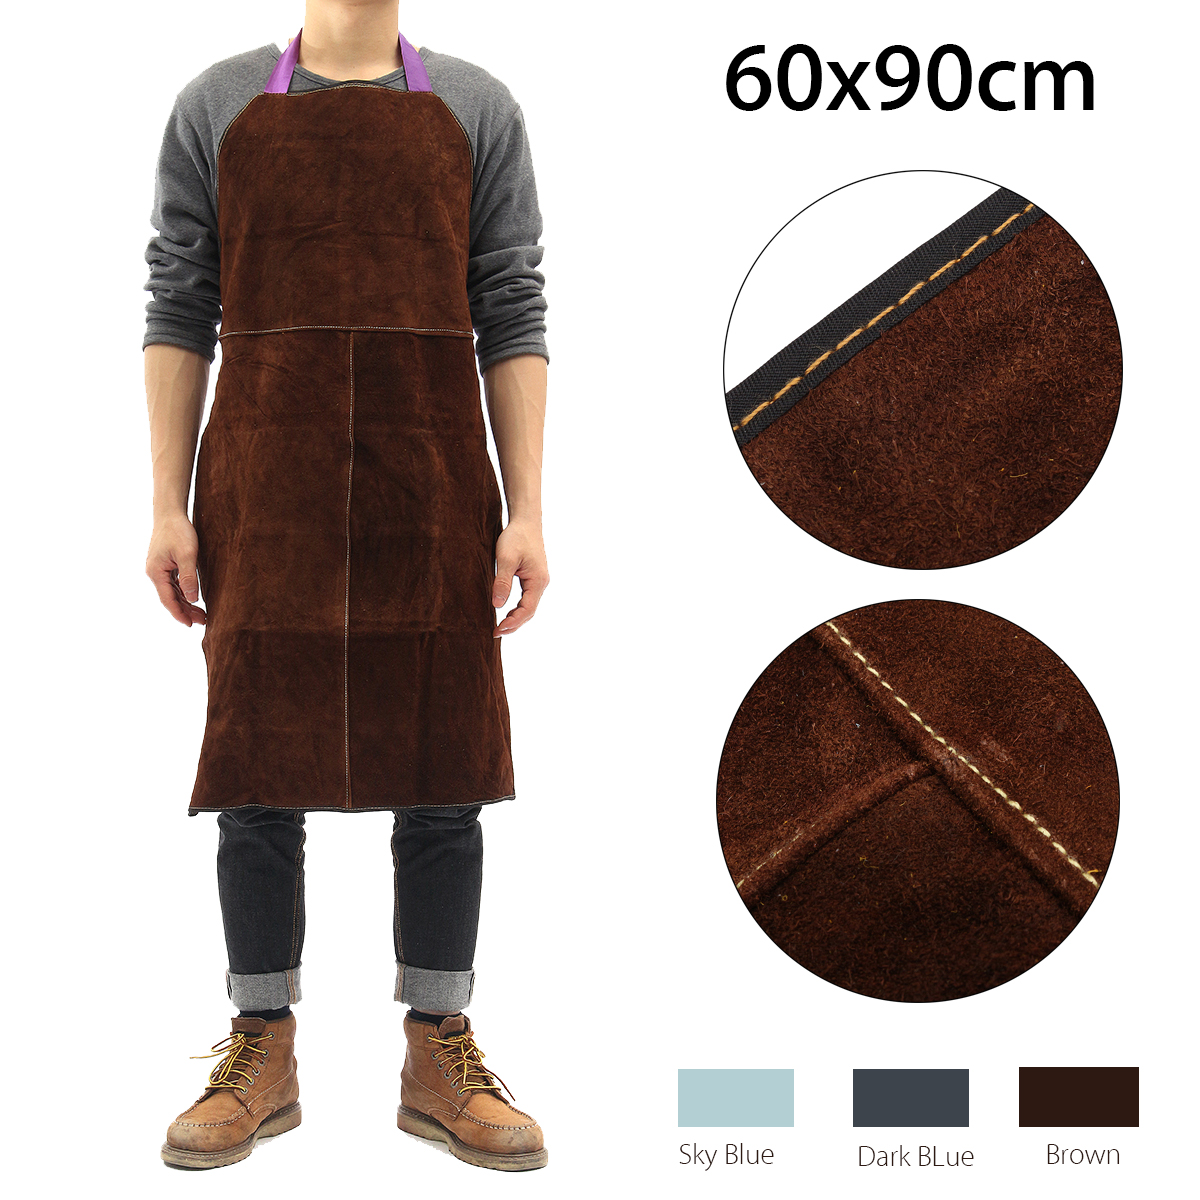 Safurance for Welders Apron Heat Resistant Welding Equipment Heat Insulation Protection Cow Leather Apron Workplace Safety my apron